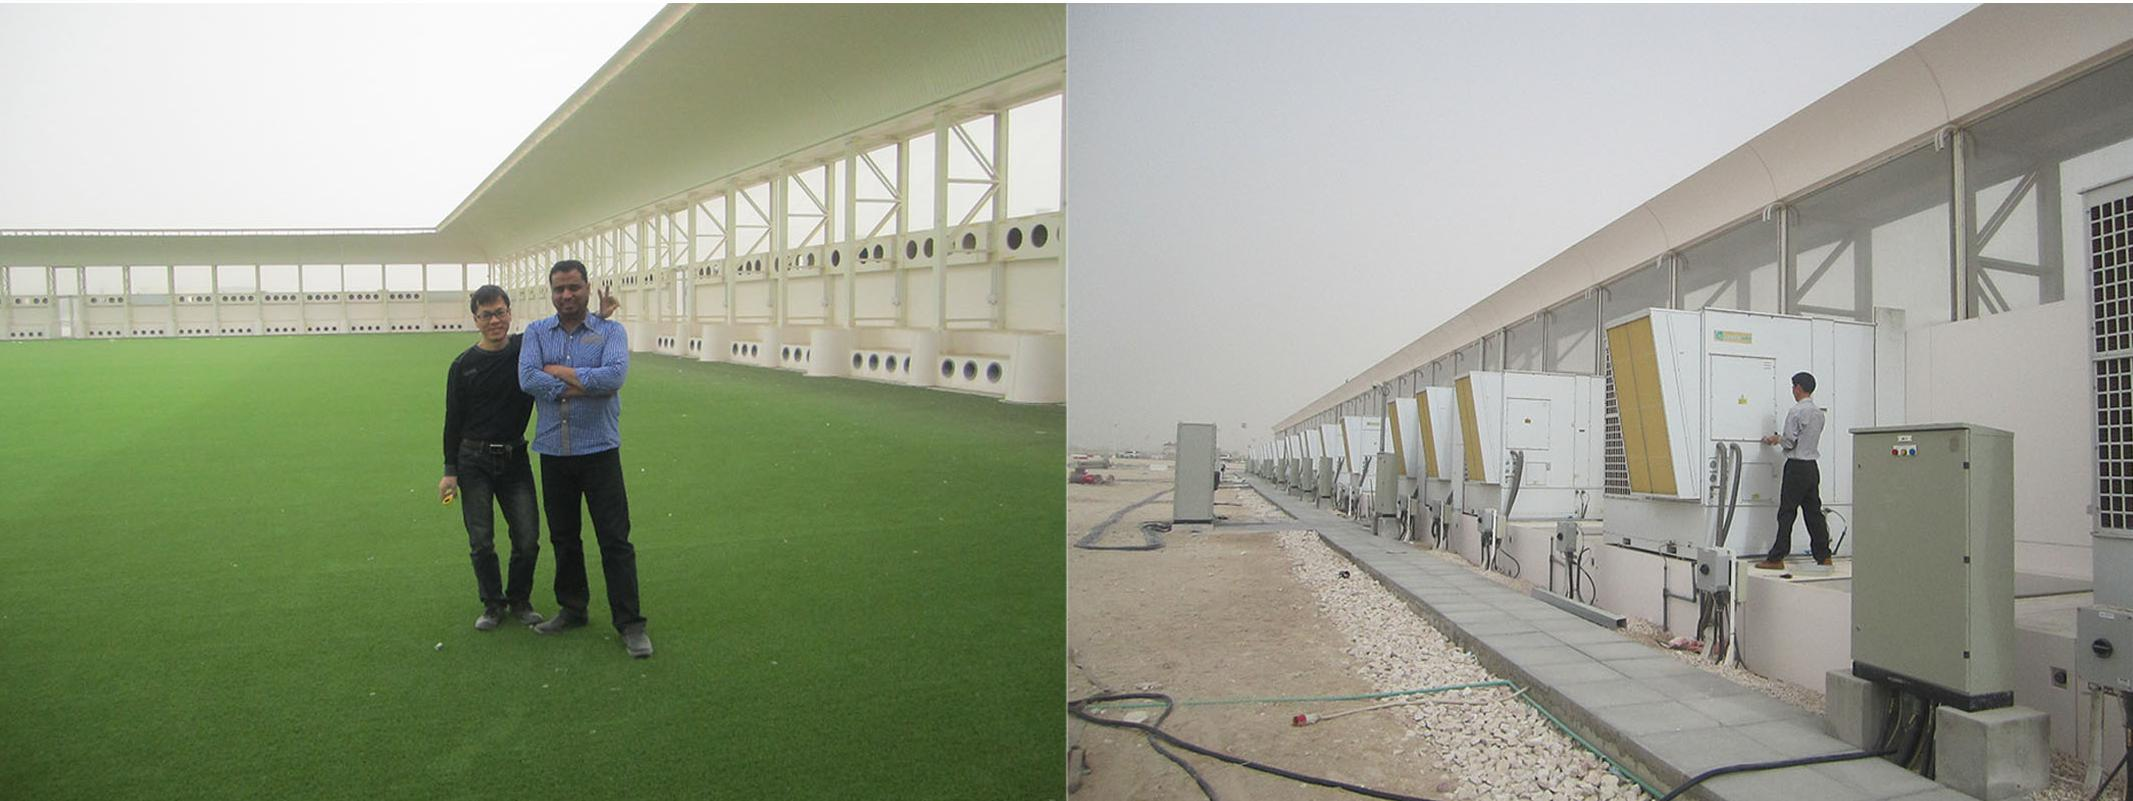 Patent Product FAO₂ Air Conditioning Is Used In Qatar Football Stadium​